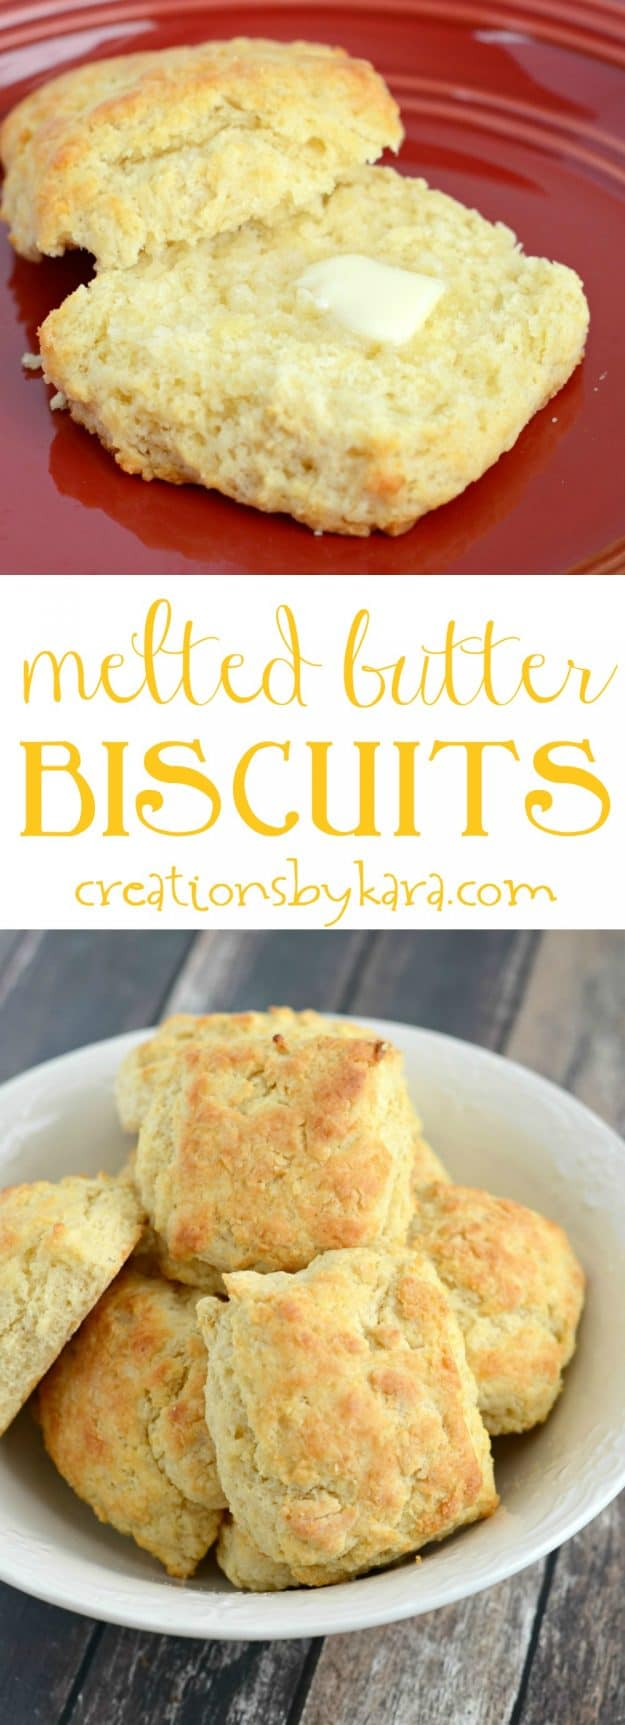 Recipe for melt in your mouth biscuits that are so simple to make. These Melted Butter Biscuits are a new family favorite. They are perfect with a bowl of soup, or served with butter and jam.